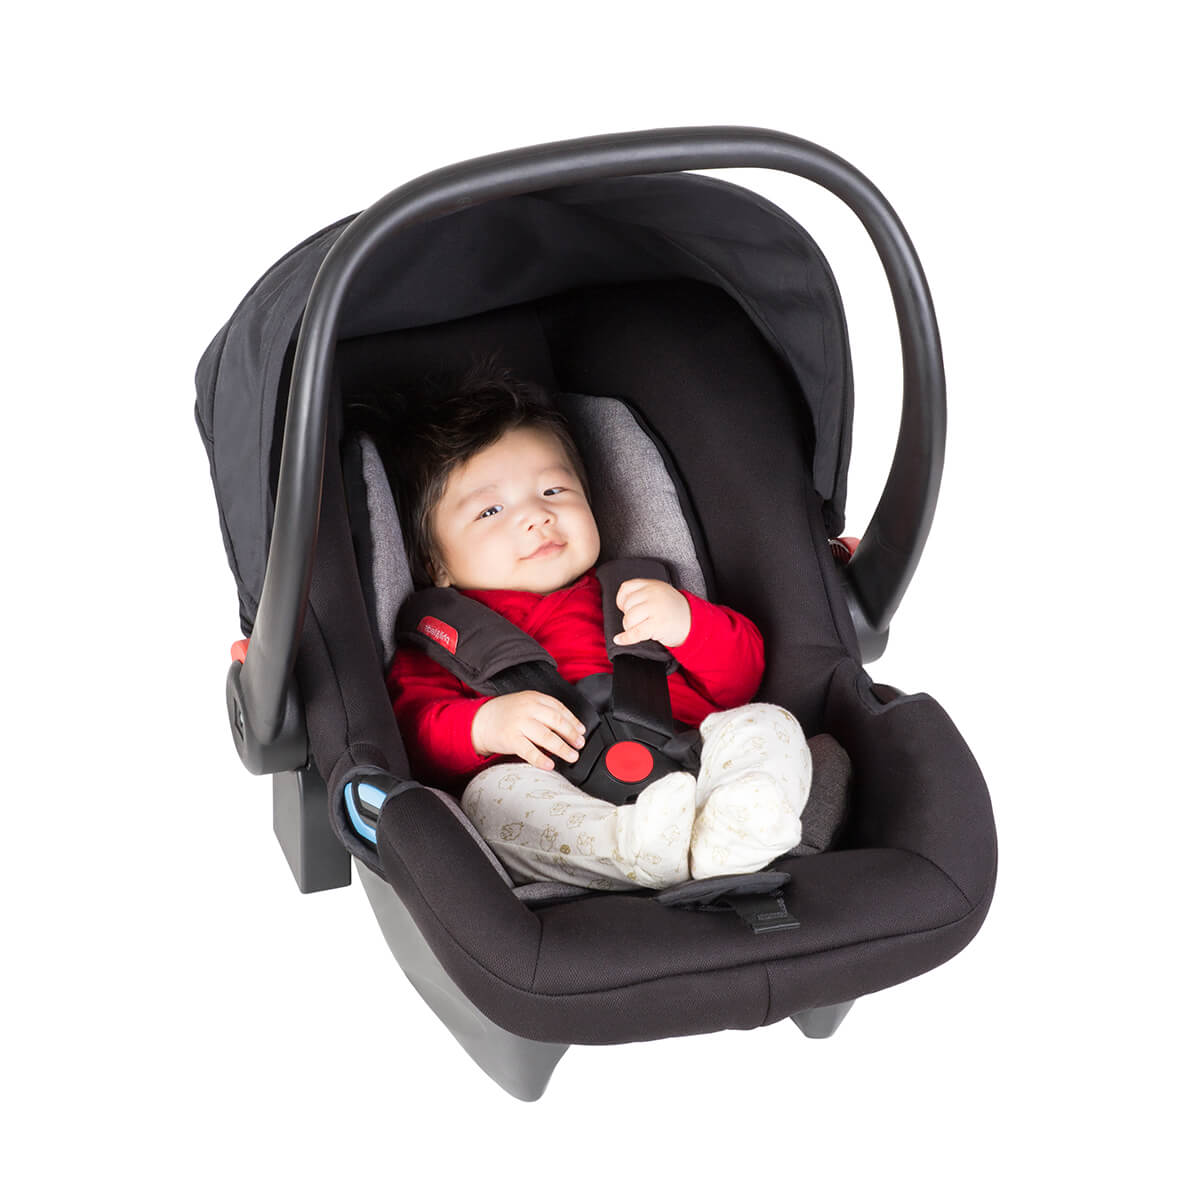 Baby Capsule Convertible Car Seat Child Restraint Fitting